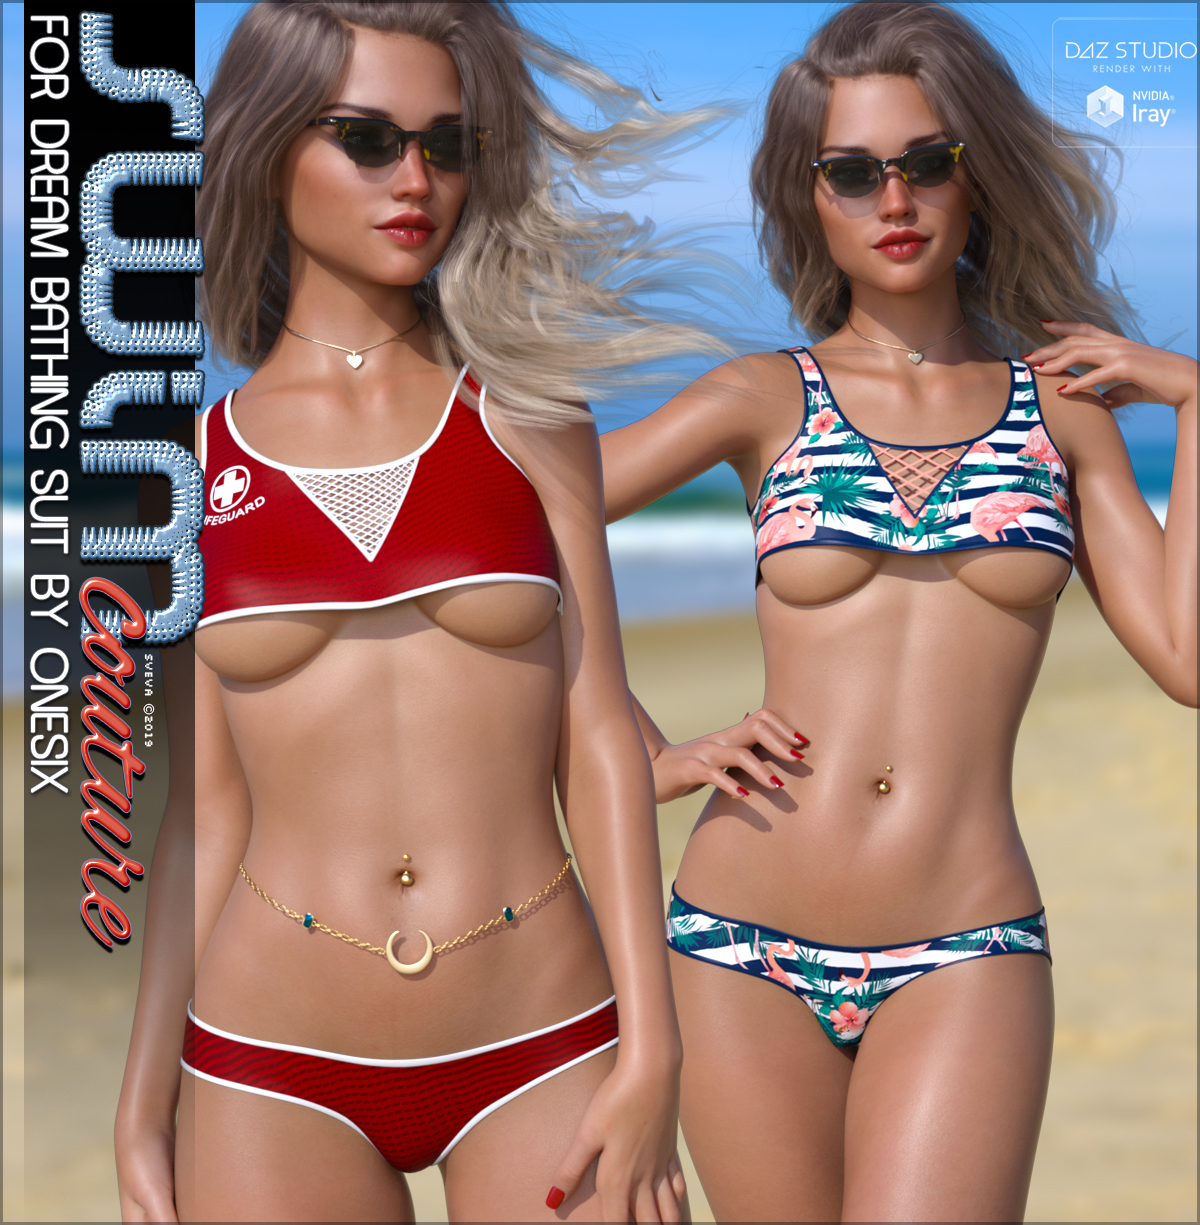 SWIM Couture for Dream Bathing Suit G8F